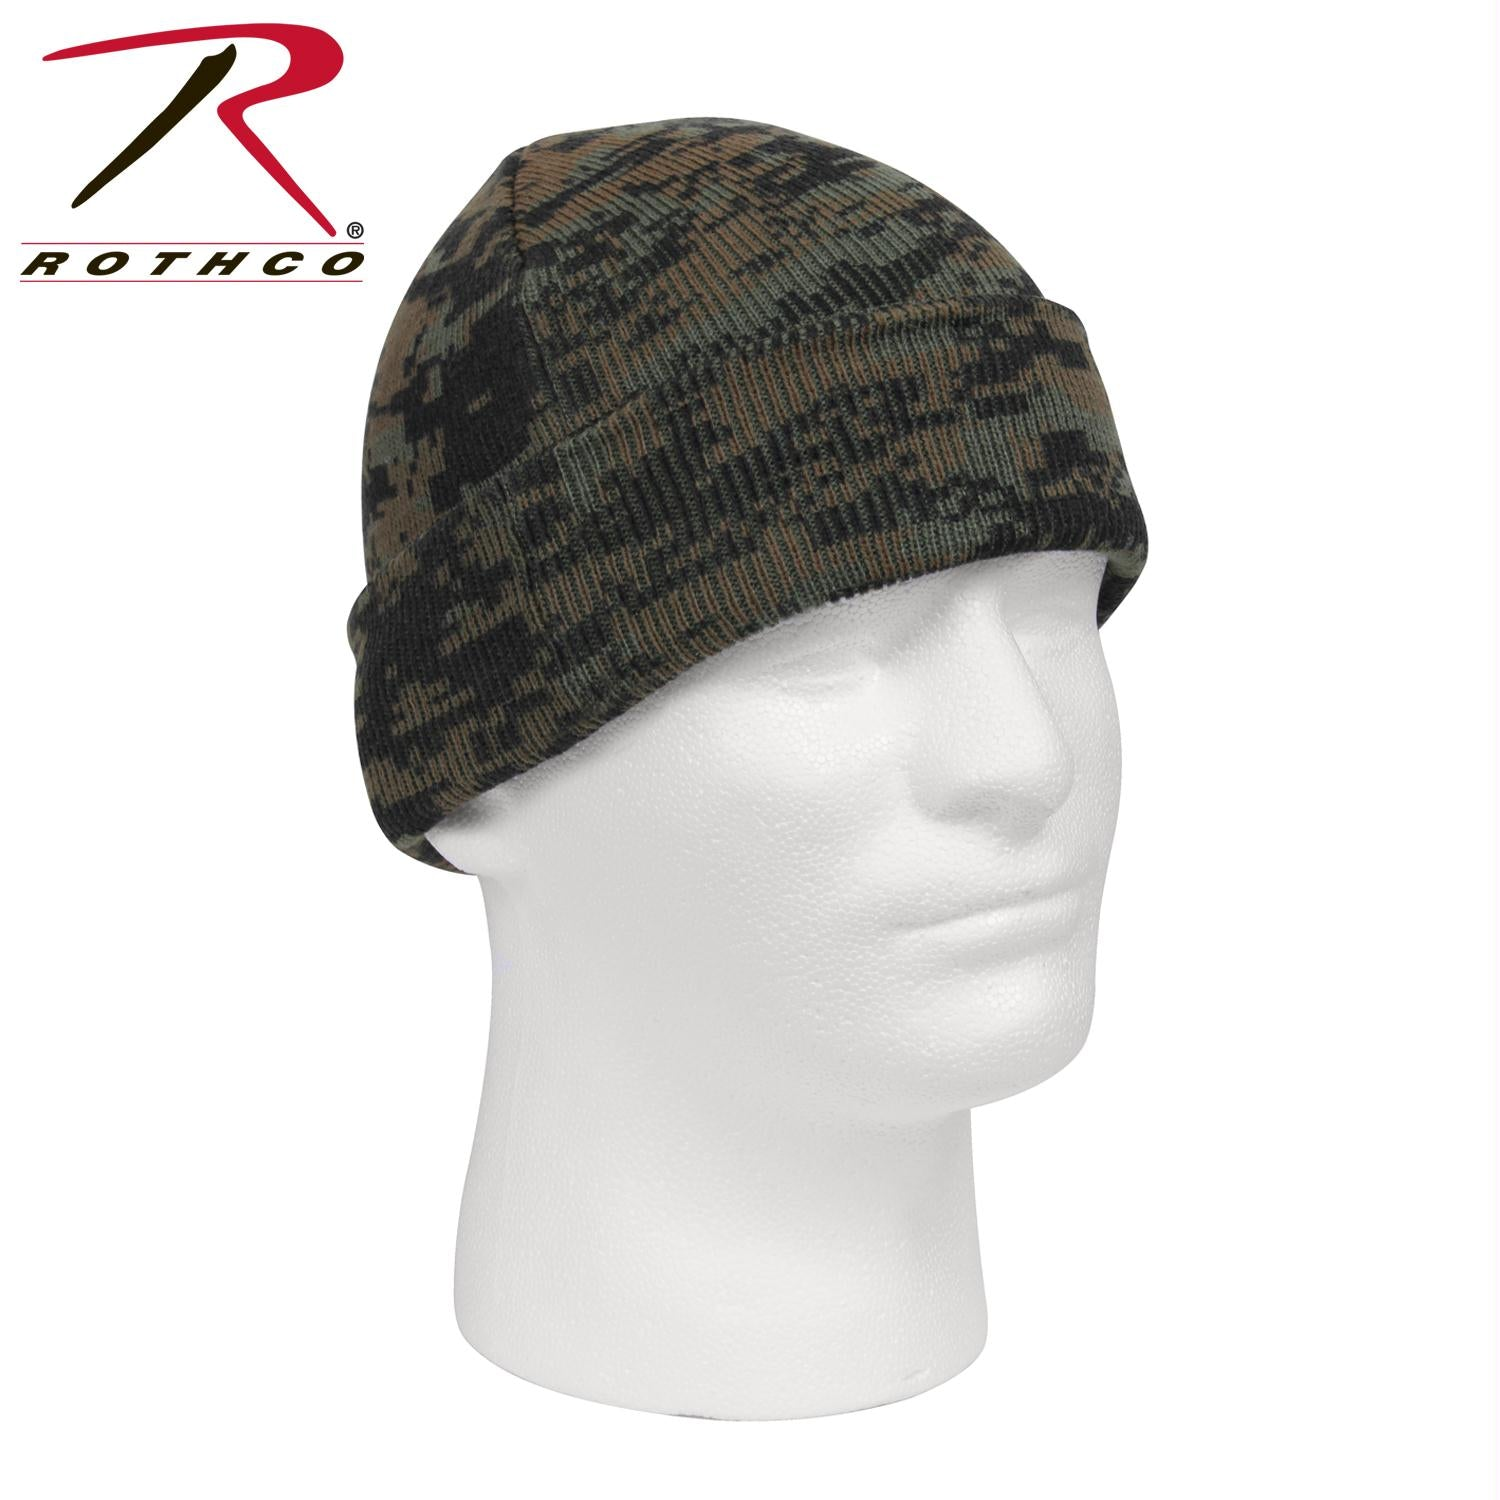 Rothco Deluxe Camo Watch Cap - Woodland Digital Camo